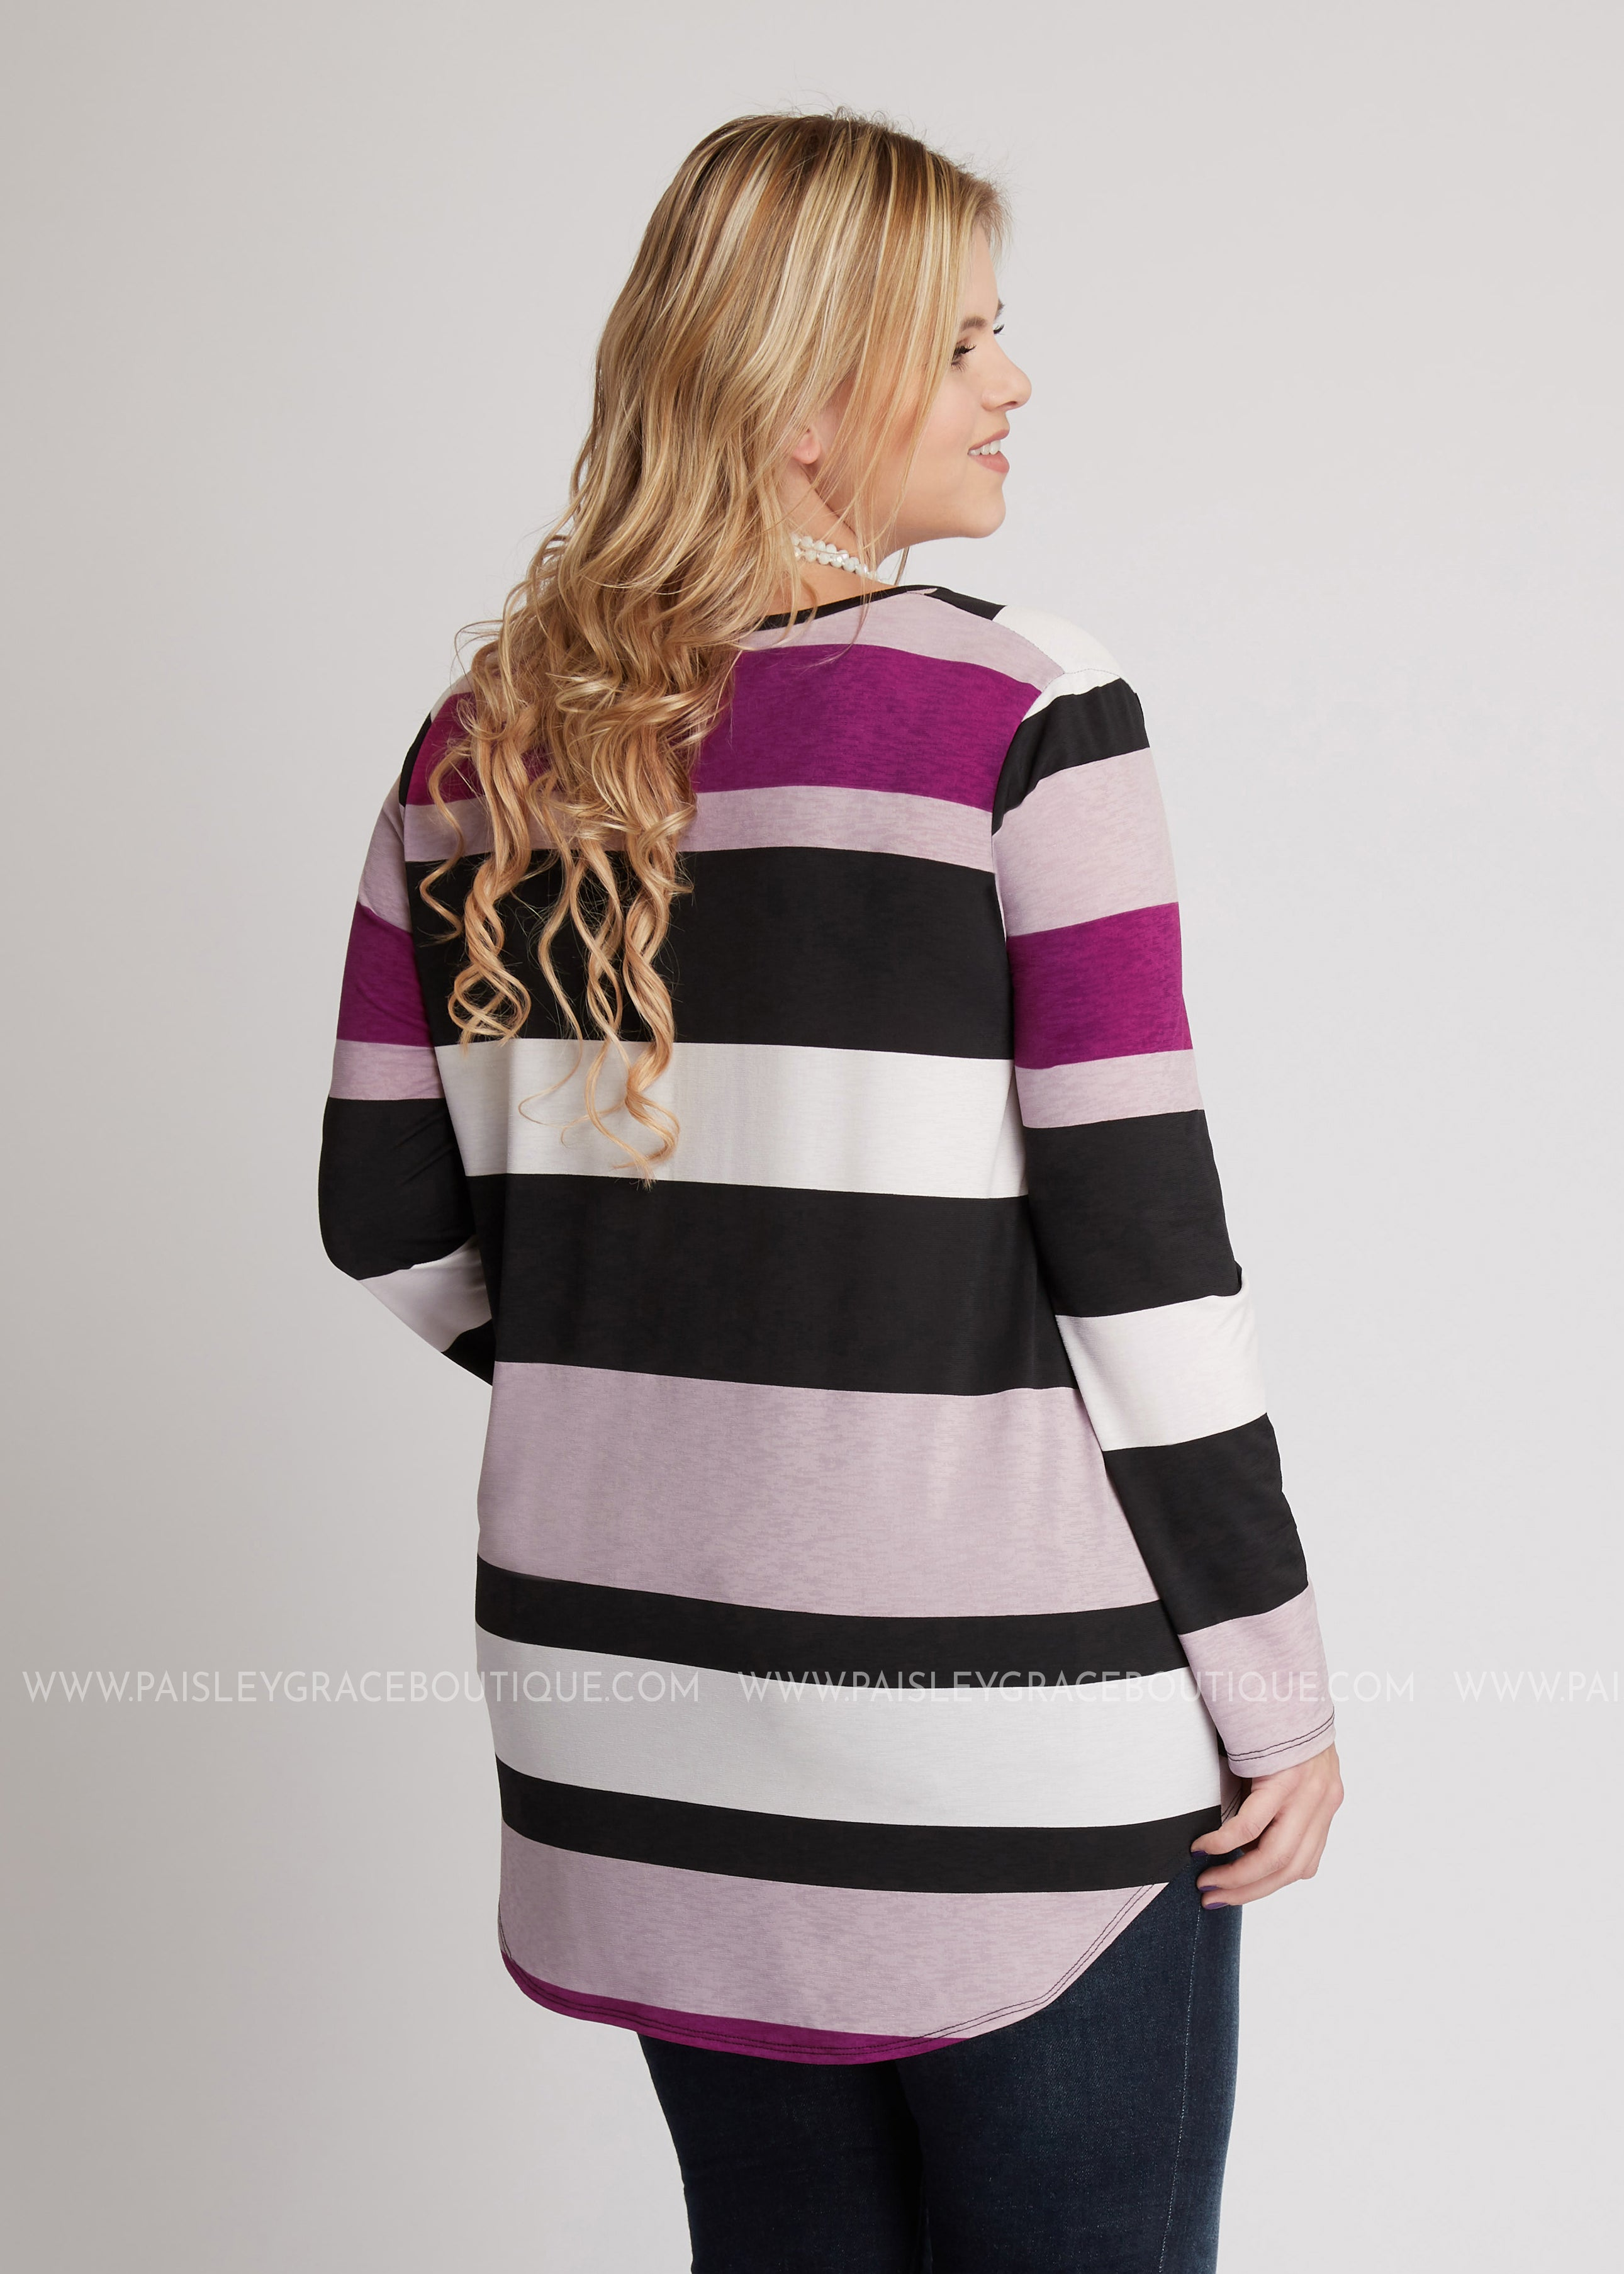 Steady Pace Knot Top - FINAL SALE